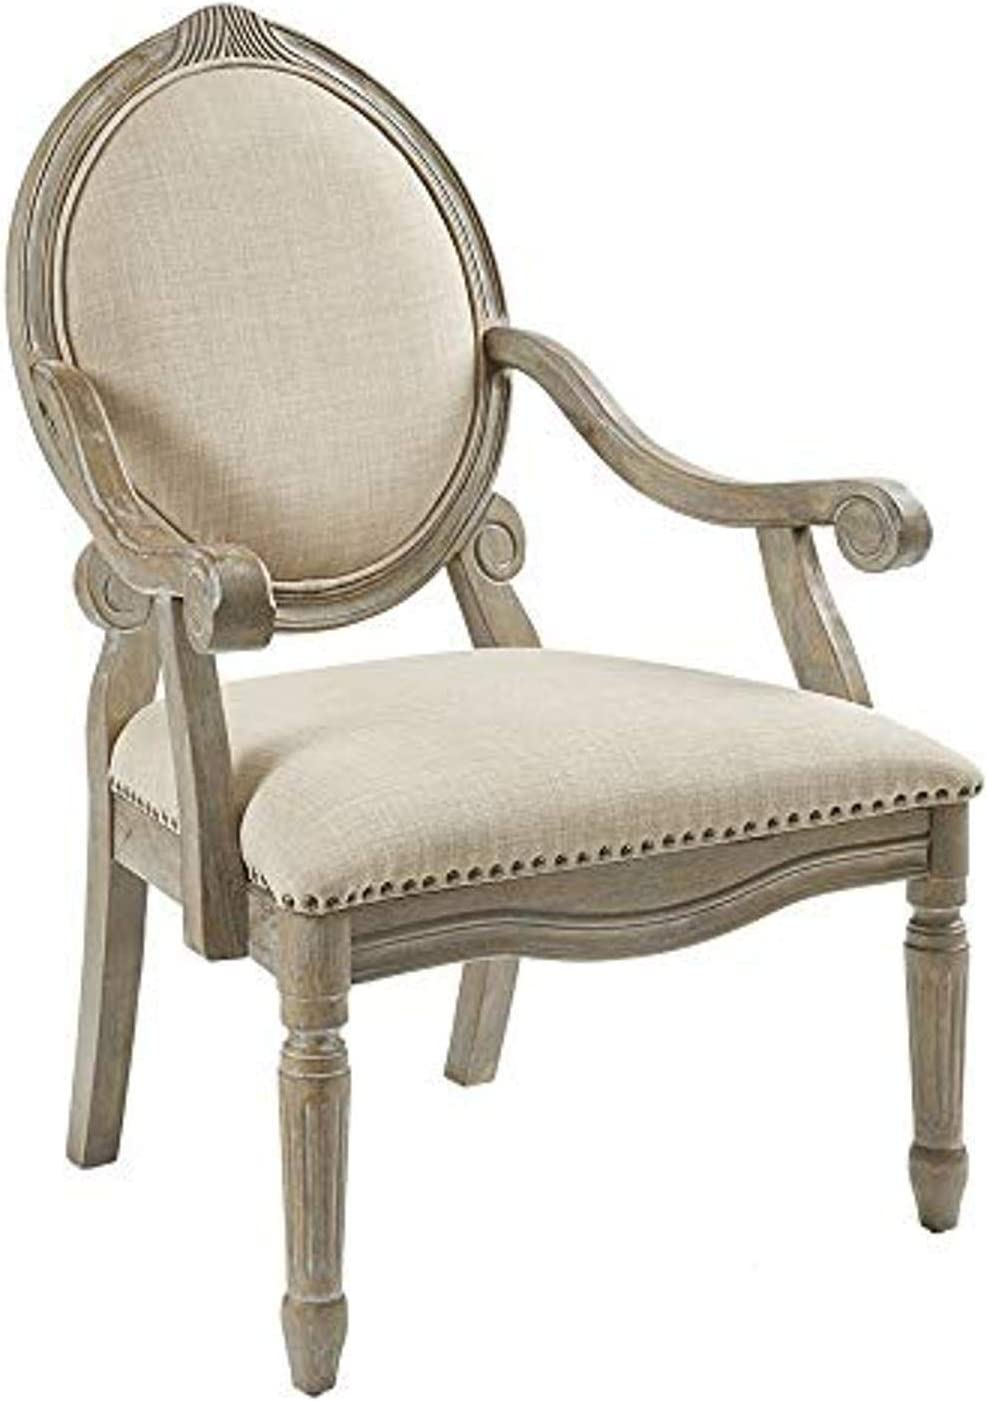 Madison Park Brentwood Accent Chairs-Birch Hardwood, Hand Carved Scroll Design Living Armchair Modern Classic Style Family Room Sofa Furniture Bedroom Lounge, Medium, Beige